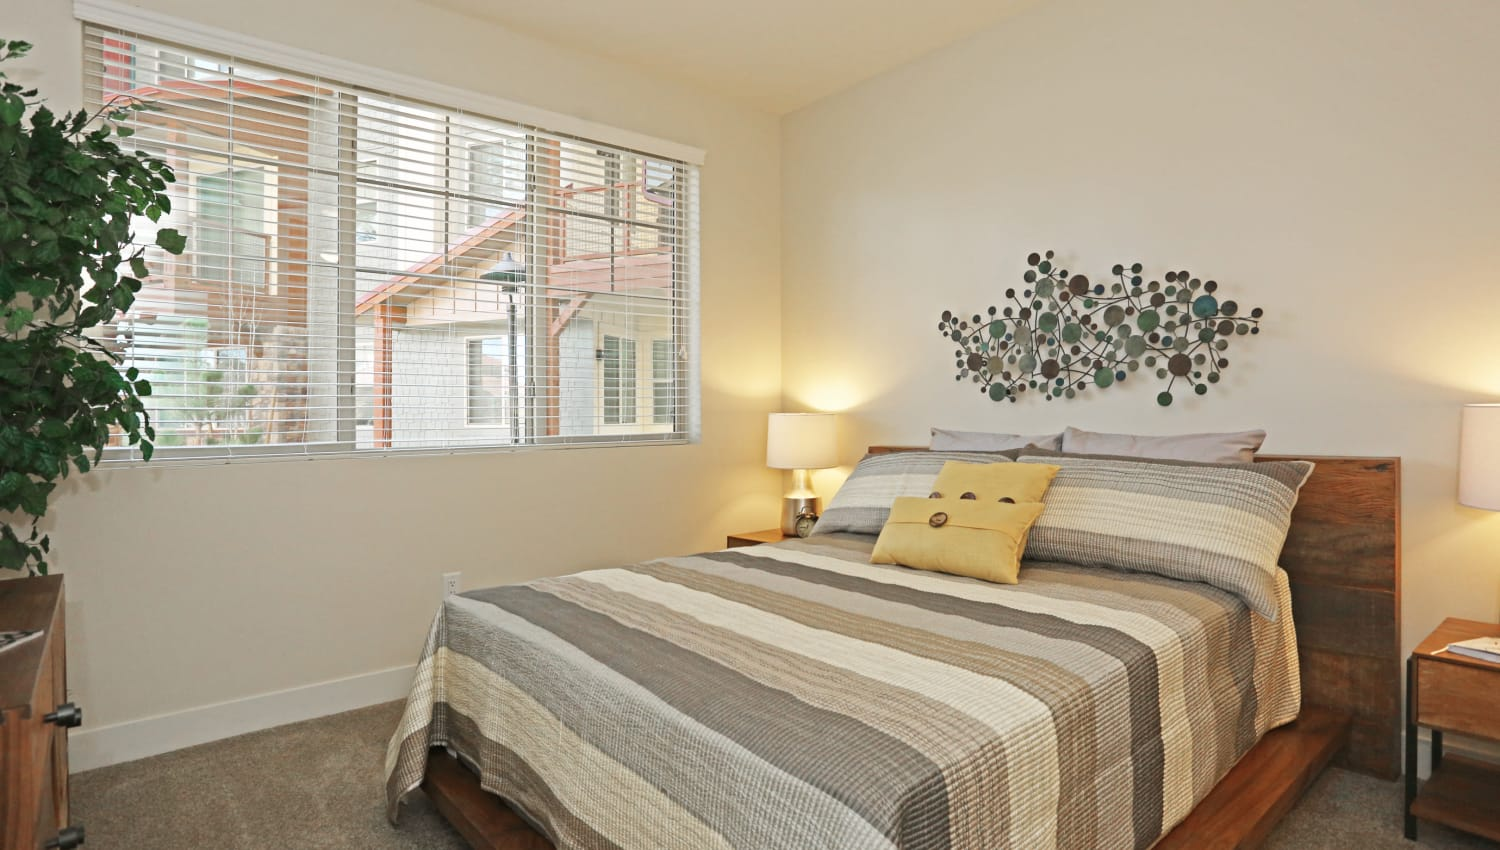 Resident bedroom with wall art at Mountain Trail in Flagstaff, Arizona